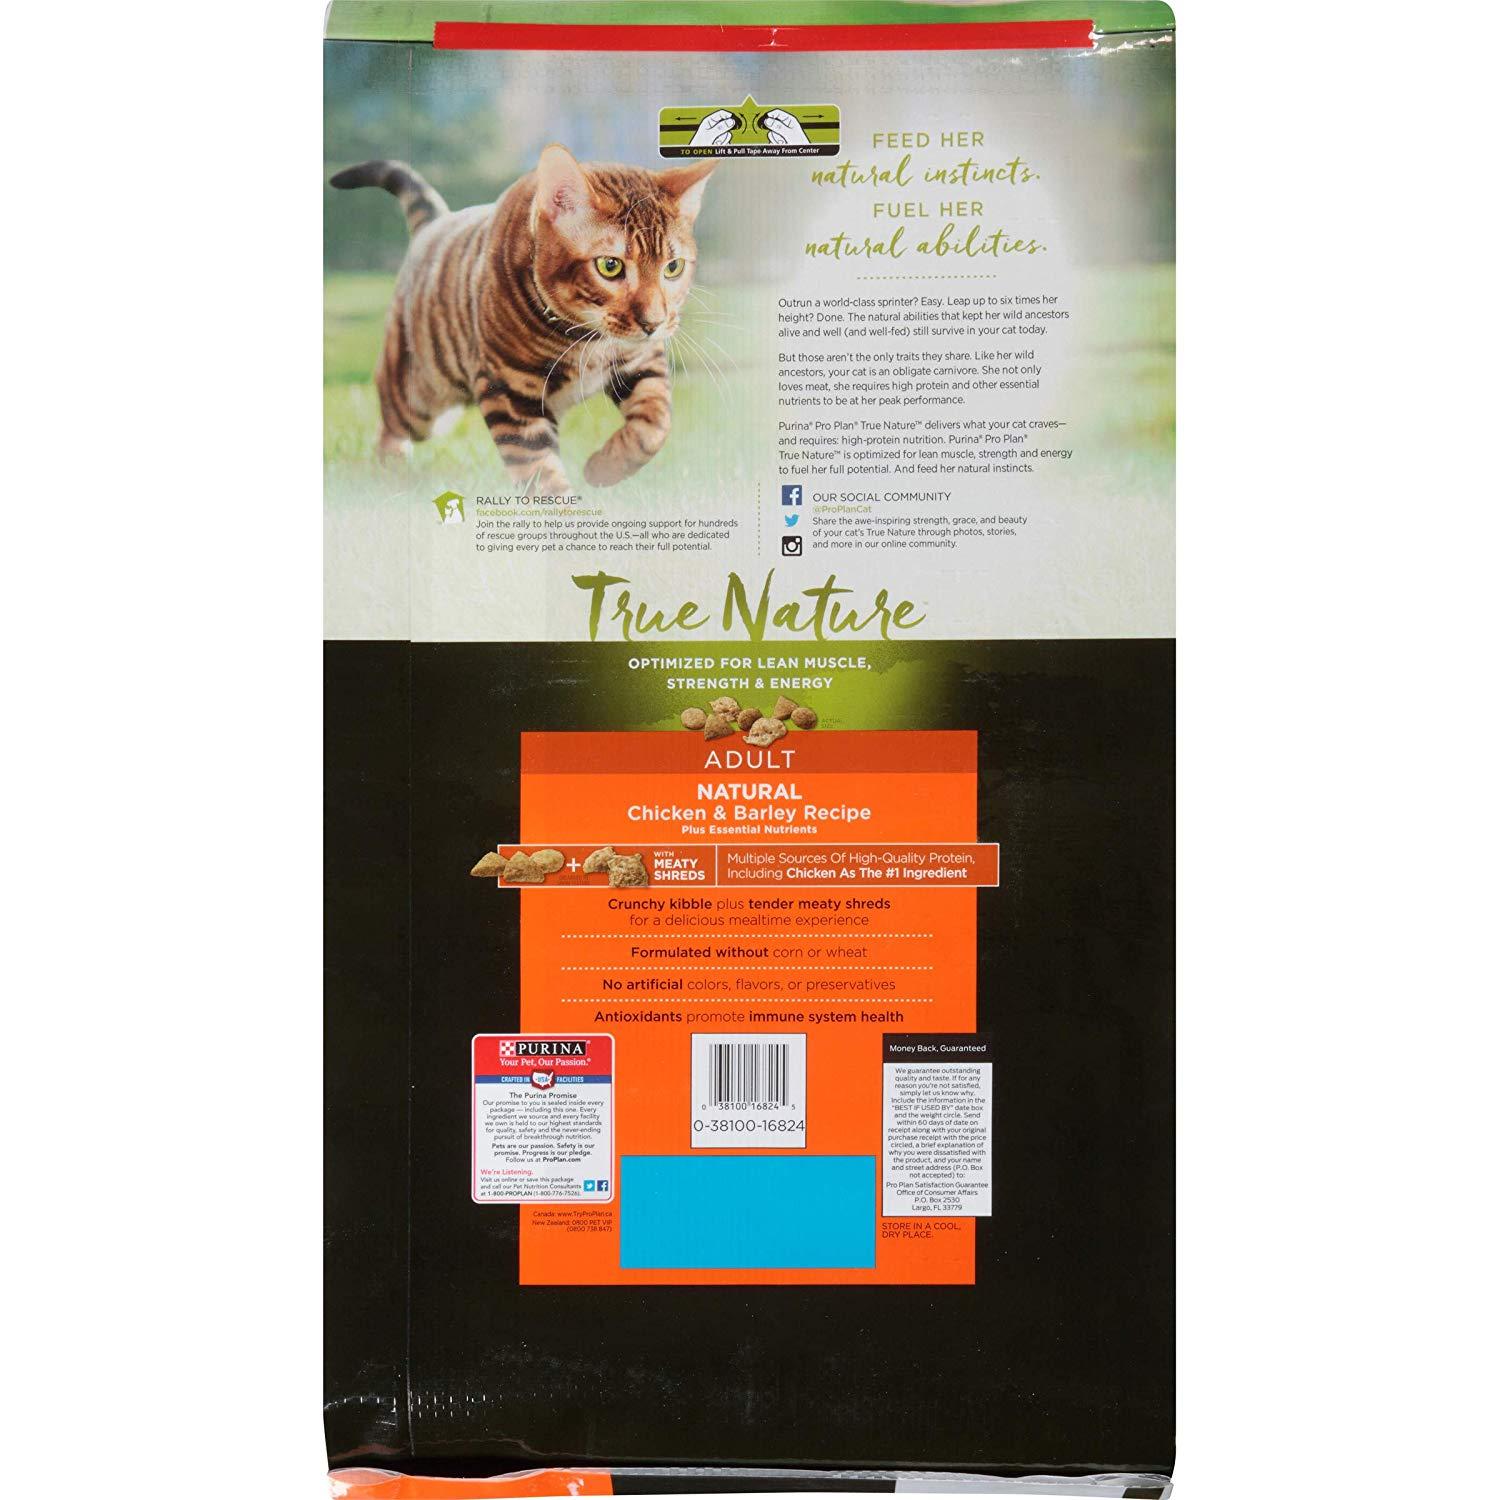 Purina Pro Plan True Nature Natural Chicken & Barley Recipe Adult Dry Cat Food